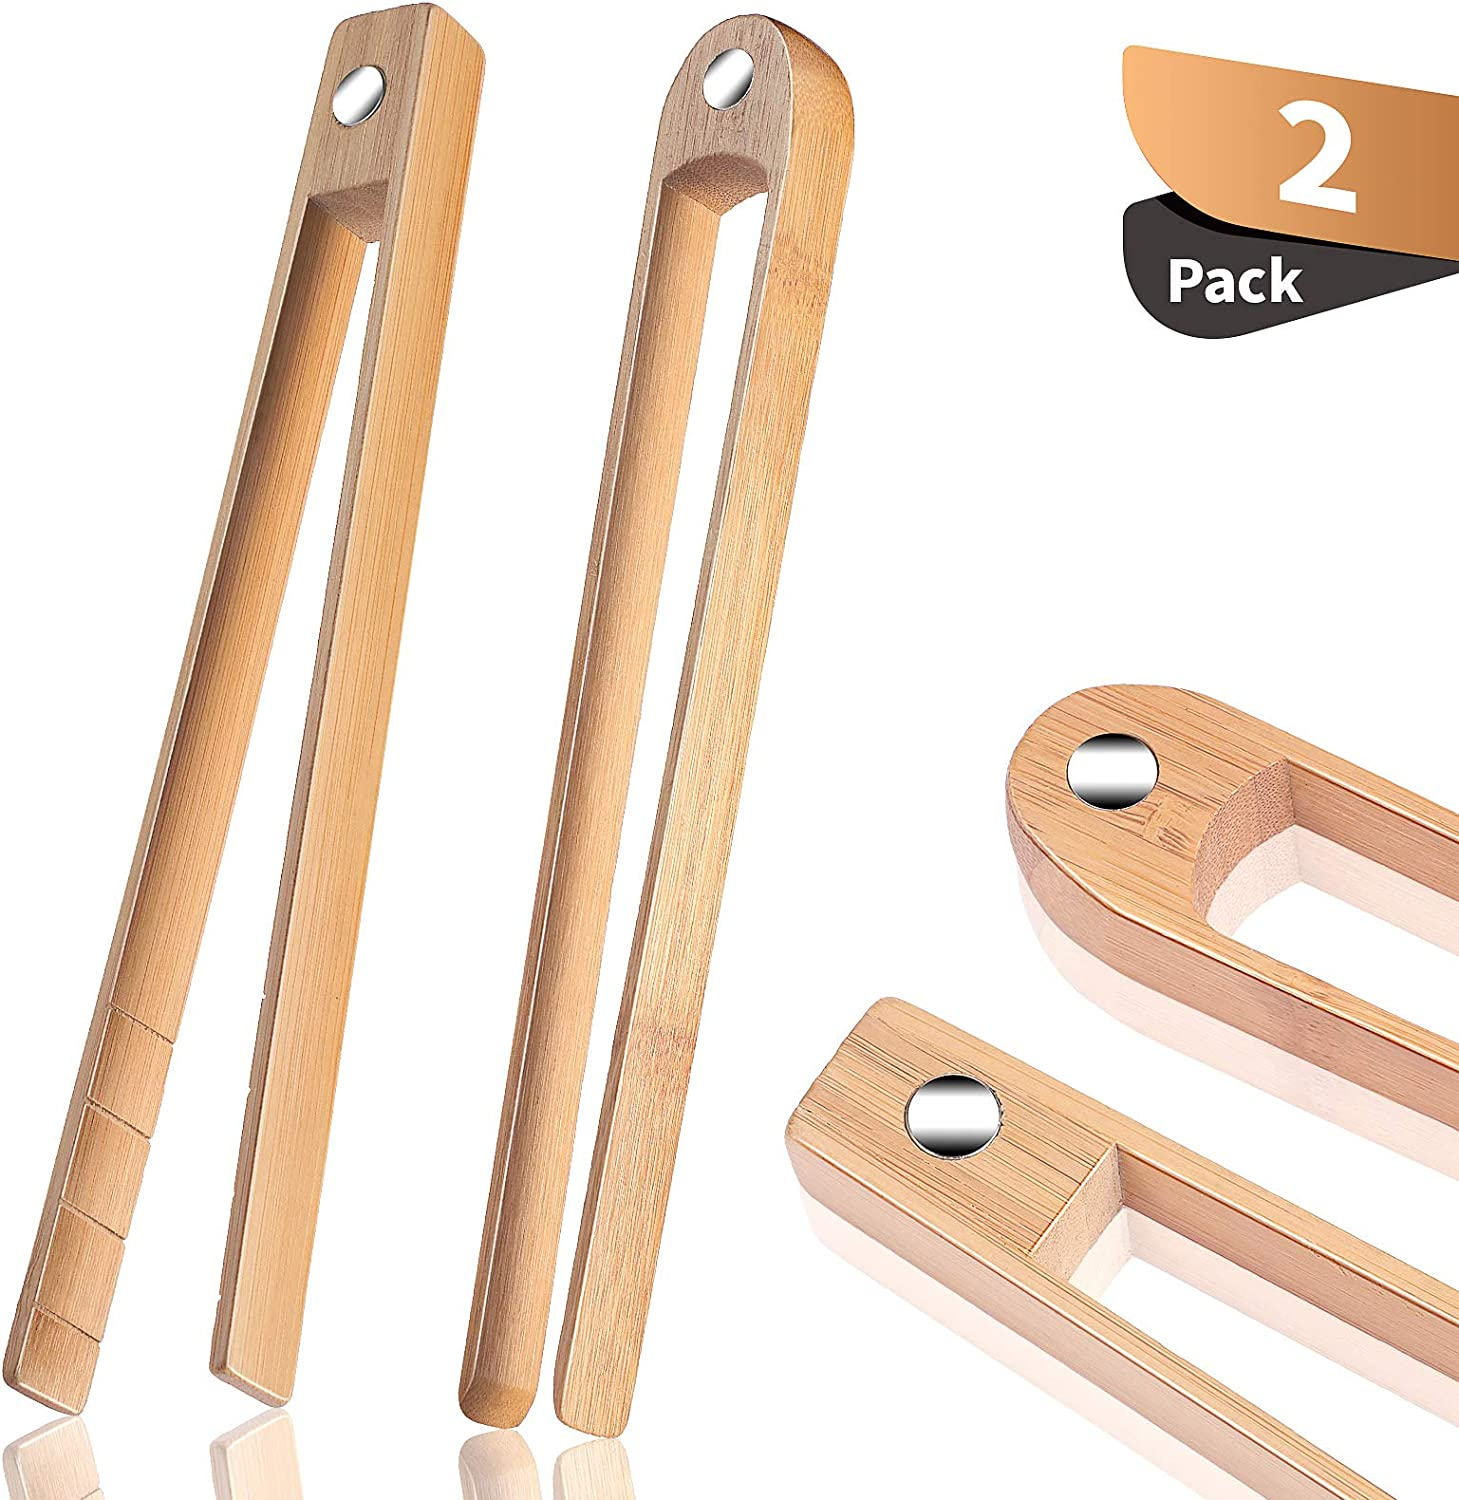 2 Pieces Magnetic Bamboo Toaster Tongs 8.7 Inch Wooden Kitchen Toast Tongs for Cooking, Natural Bamboo Kitchen Utensils Suitable for Bagel, Toast, Cake, Bacon, Muffin, Bread